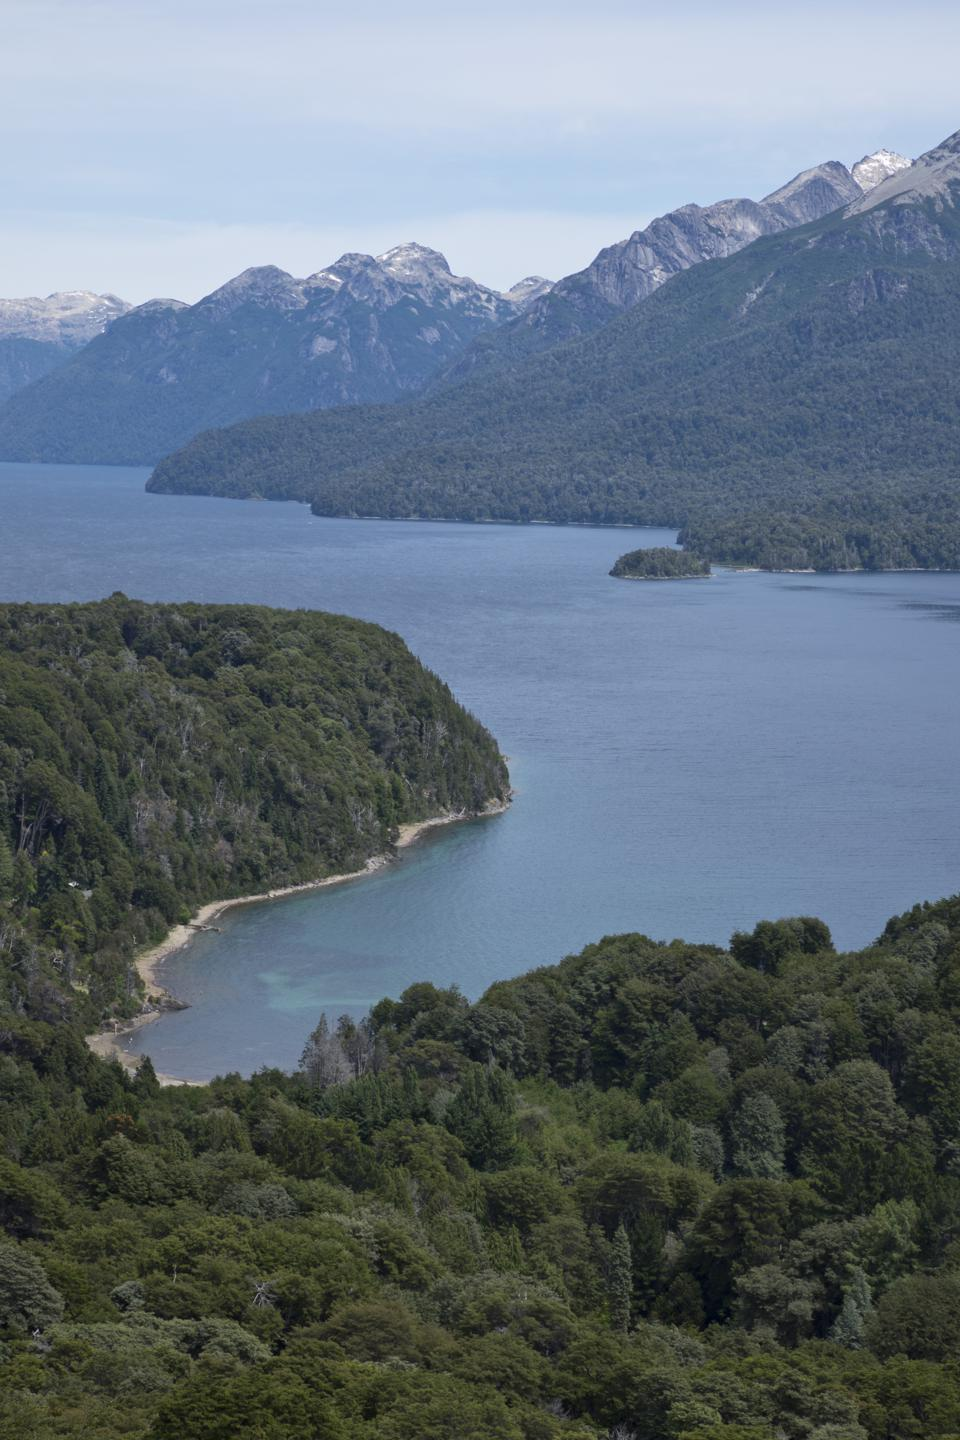 Nahuel Huapi in Bariloche, Argentina, whihc is south of the path of totality in 2020, and a good place to be based. (Photo by: Majority World/Universal Images Group via Getty Images)